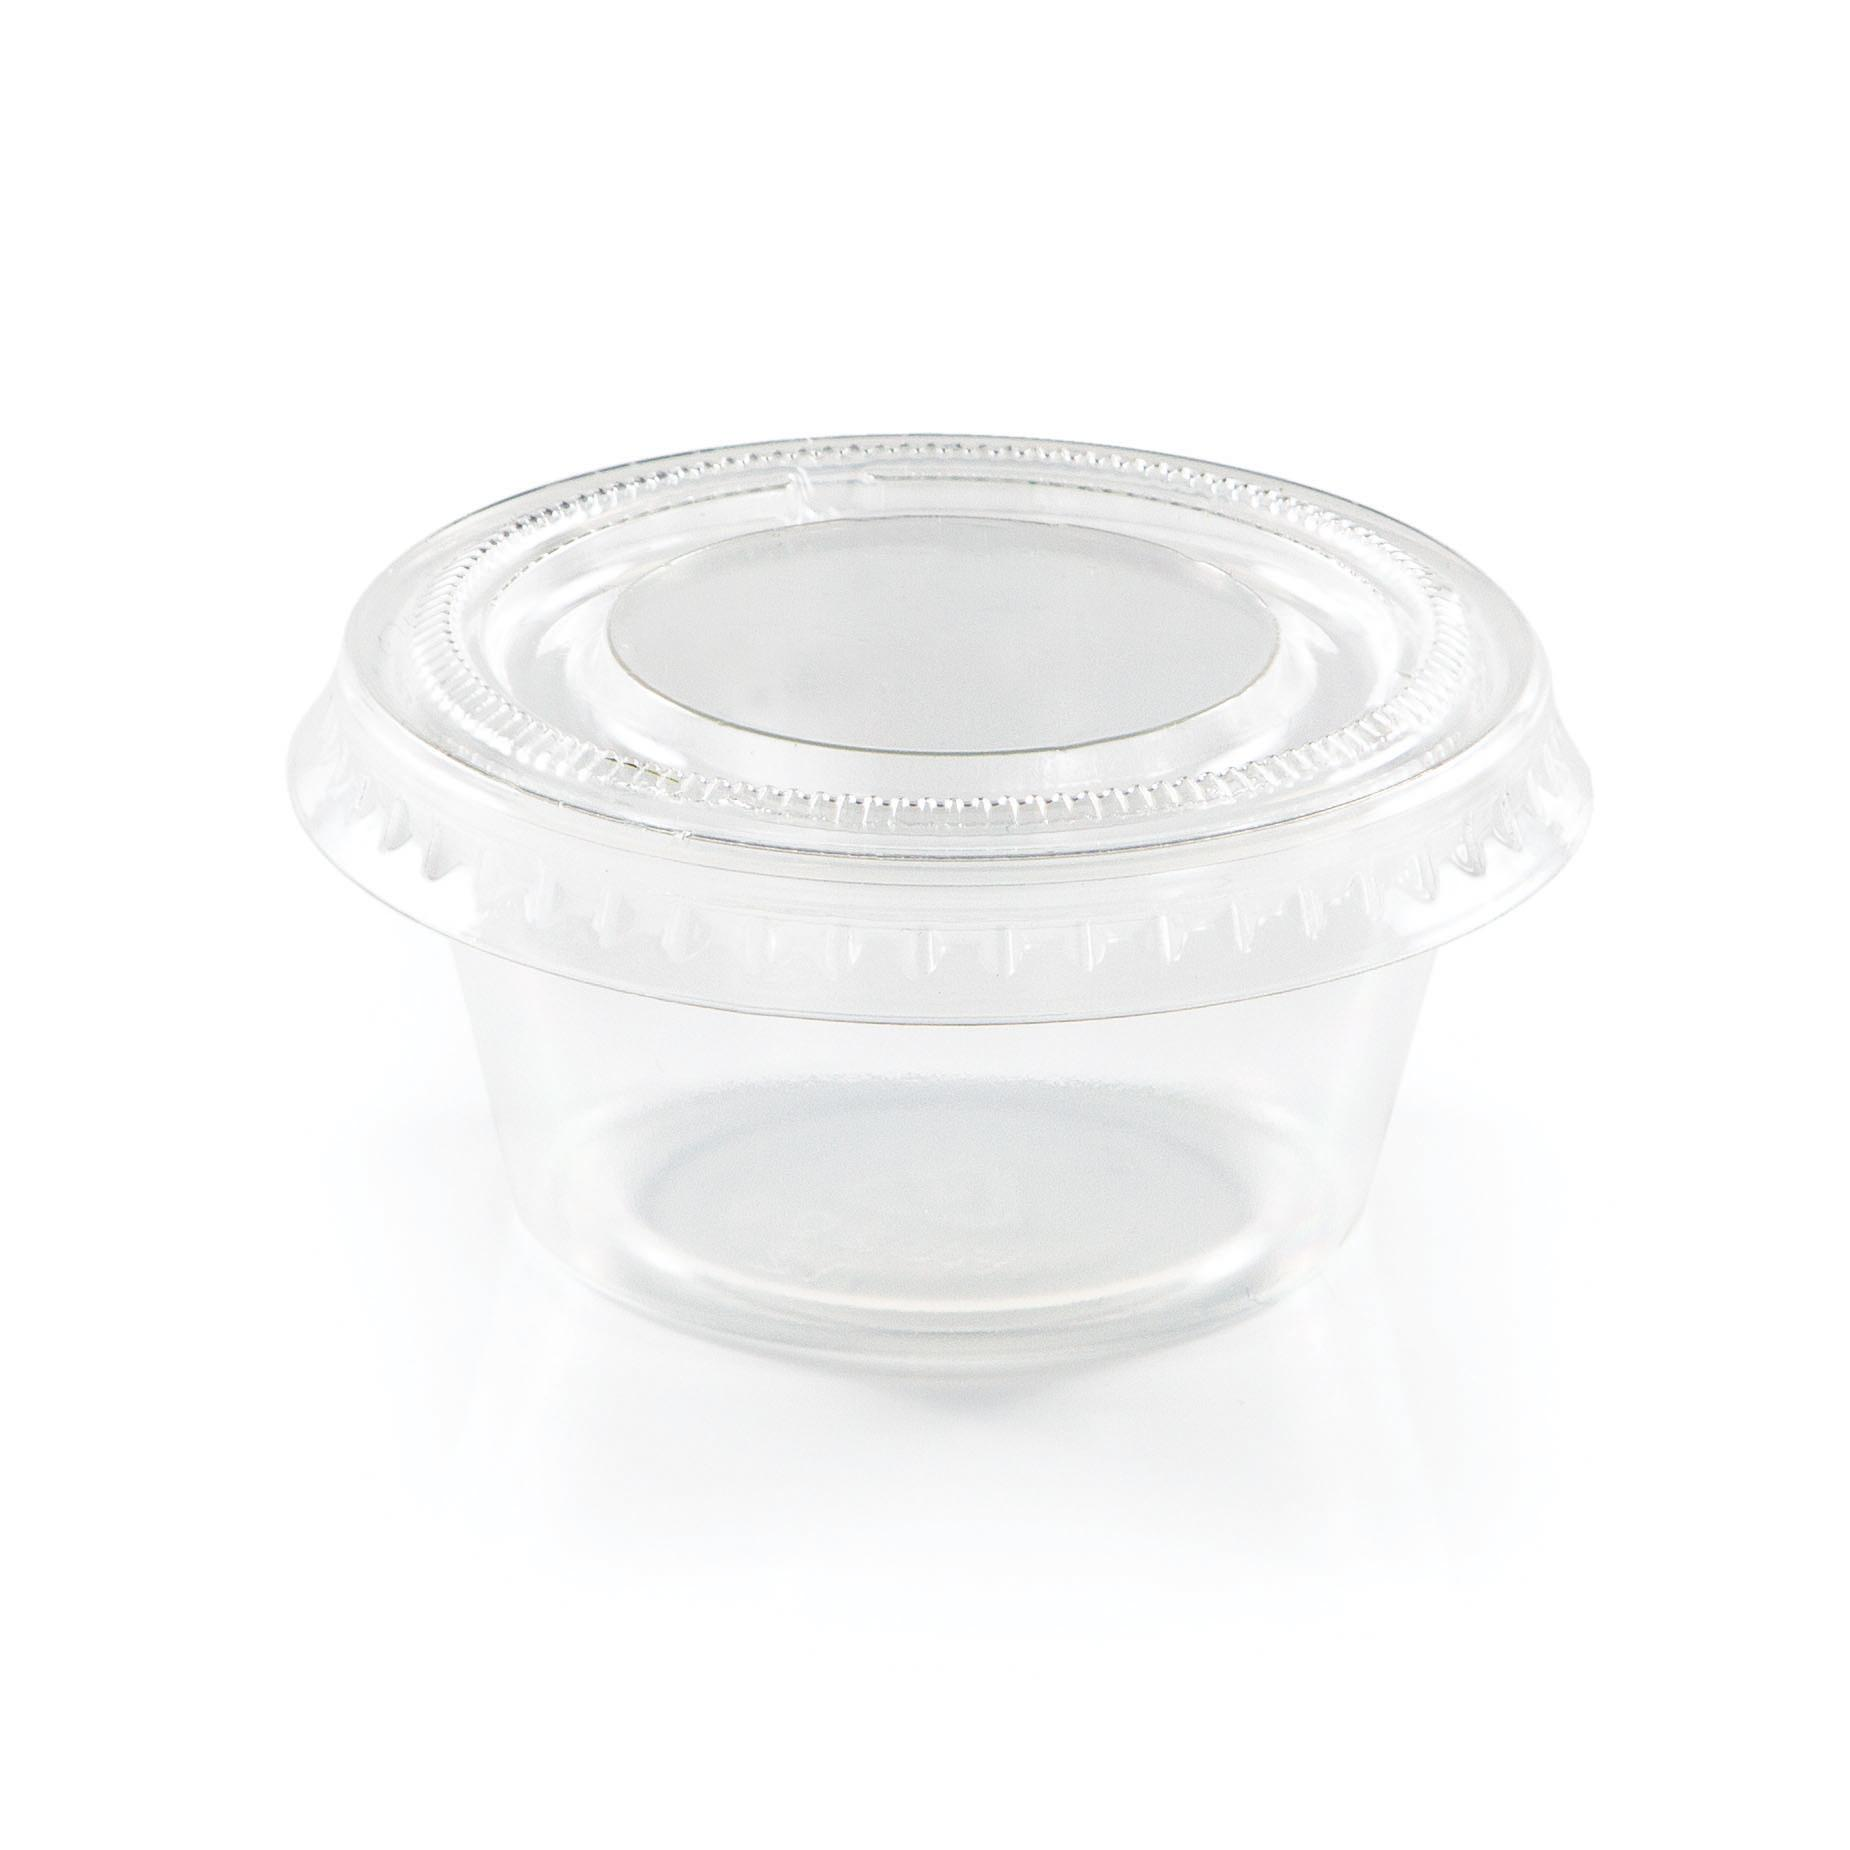 LID FOR 2 OZ PORTION CUP